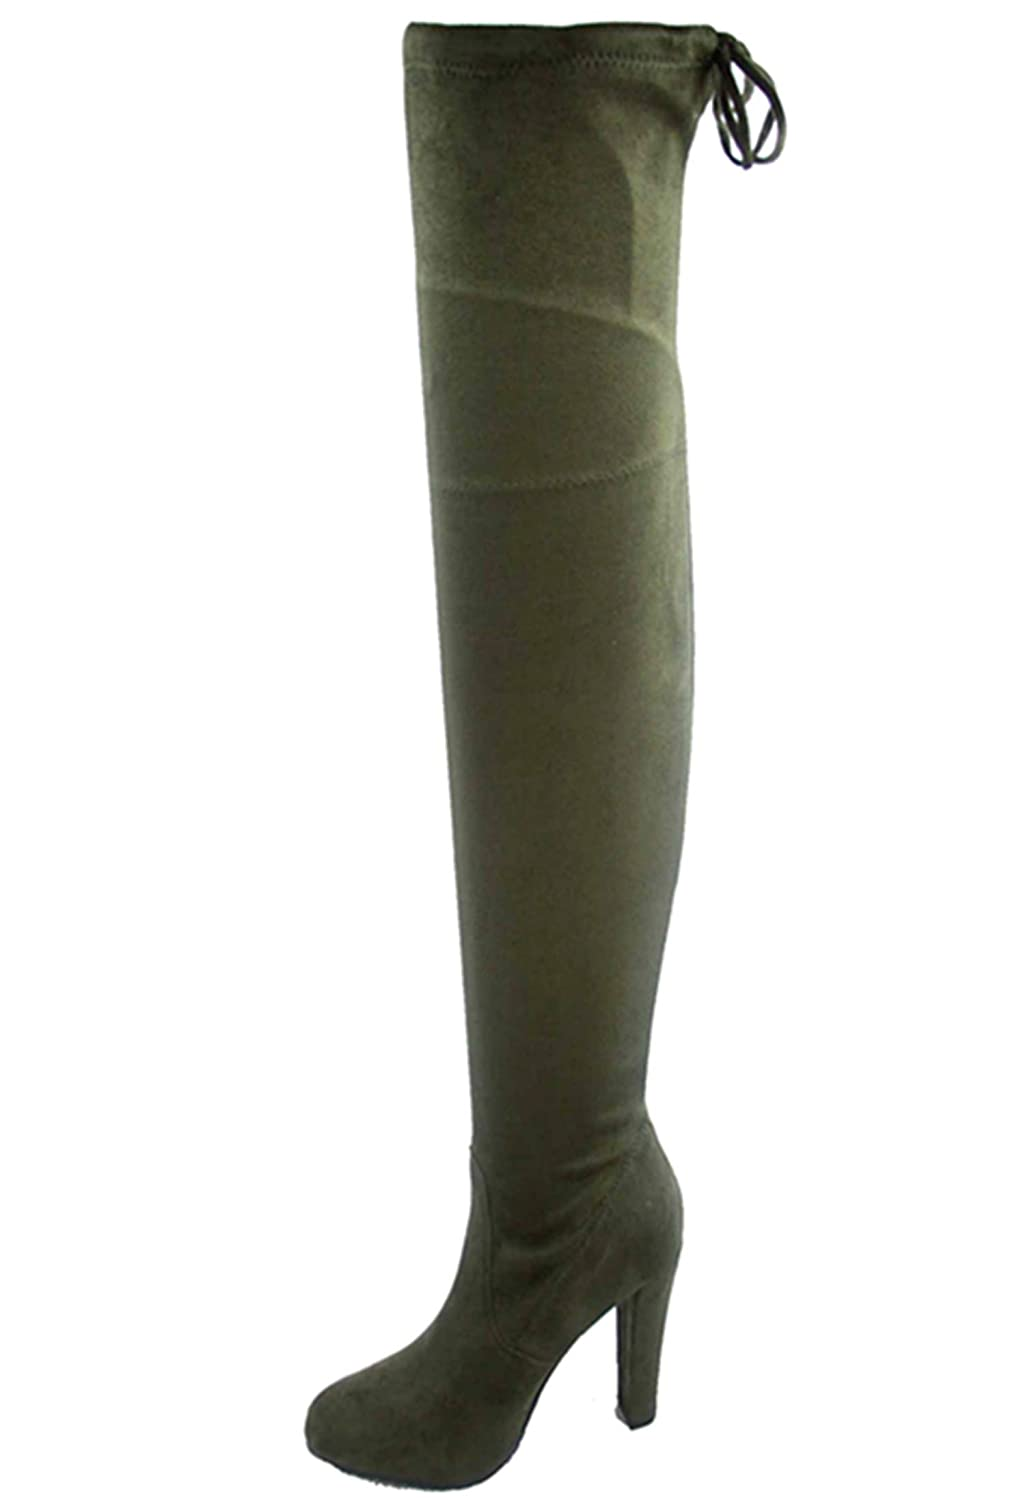 Olive-h1 S&F SF Women's Over The Knee Boots Chunky Heels String Riding Women's shoes